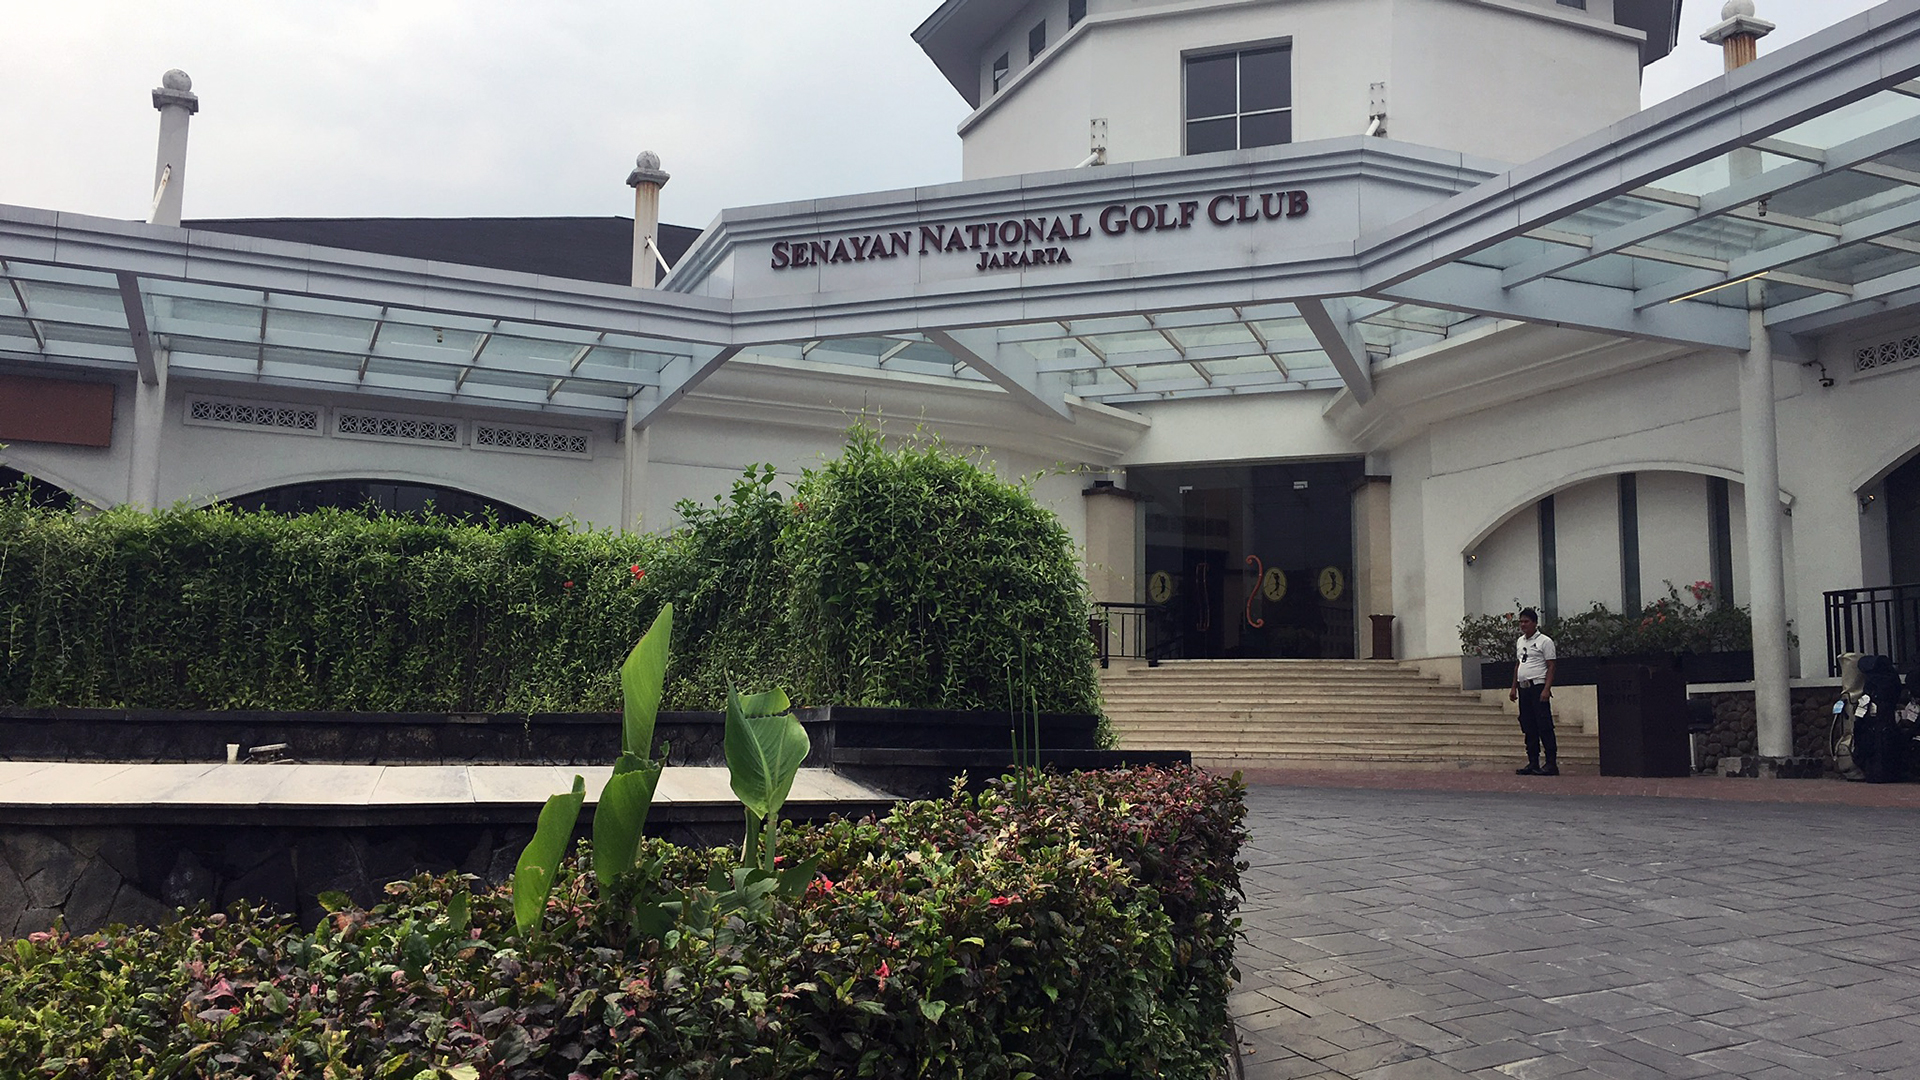 Das Clubhaus des Senayan National Golf Club in Jakarta. (Foto: Golf Post)